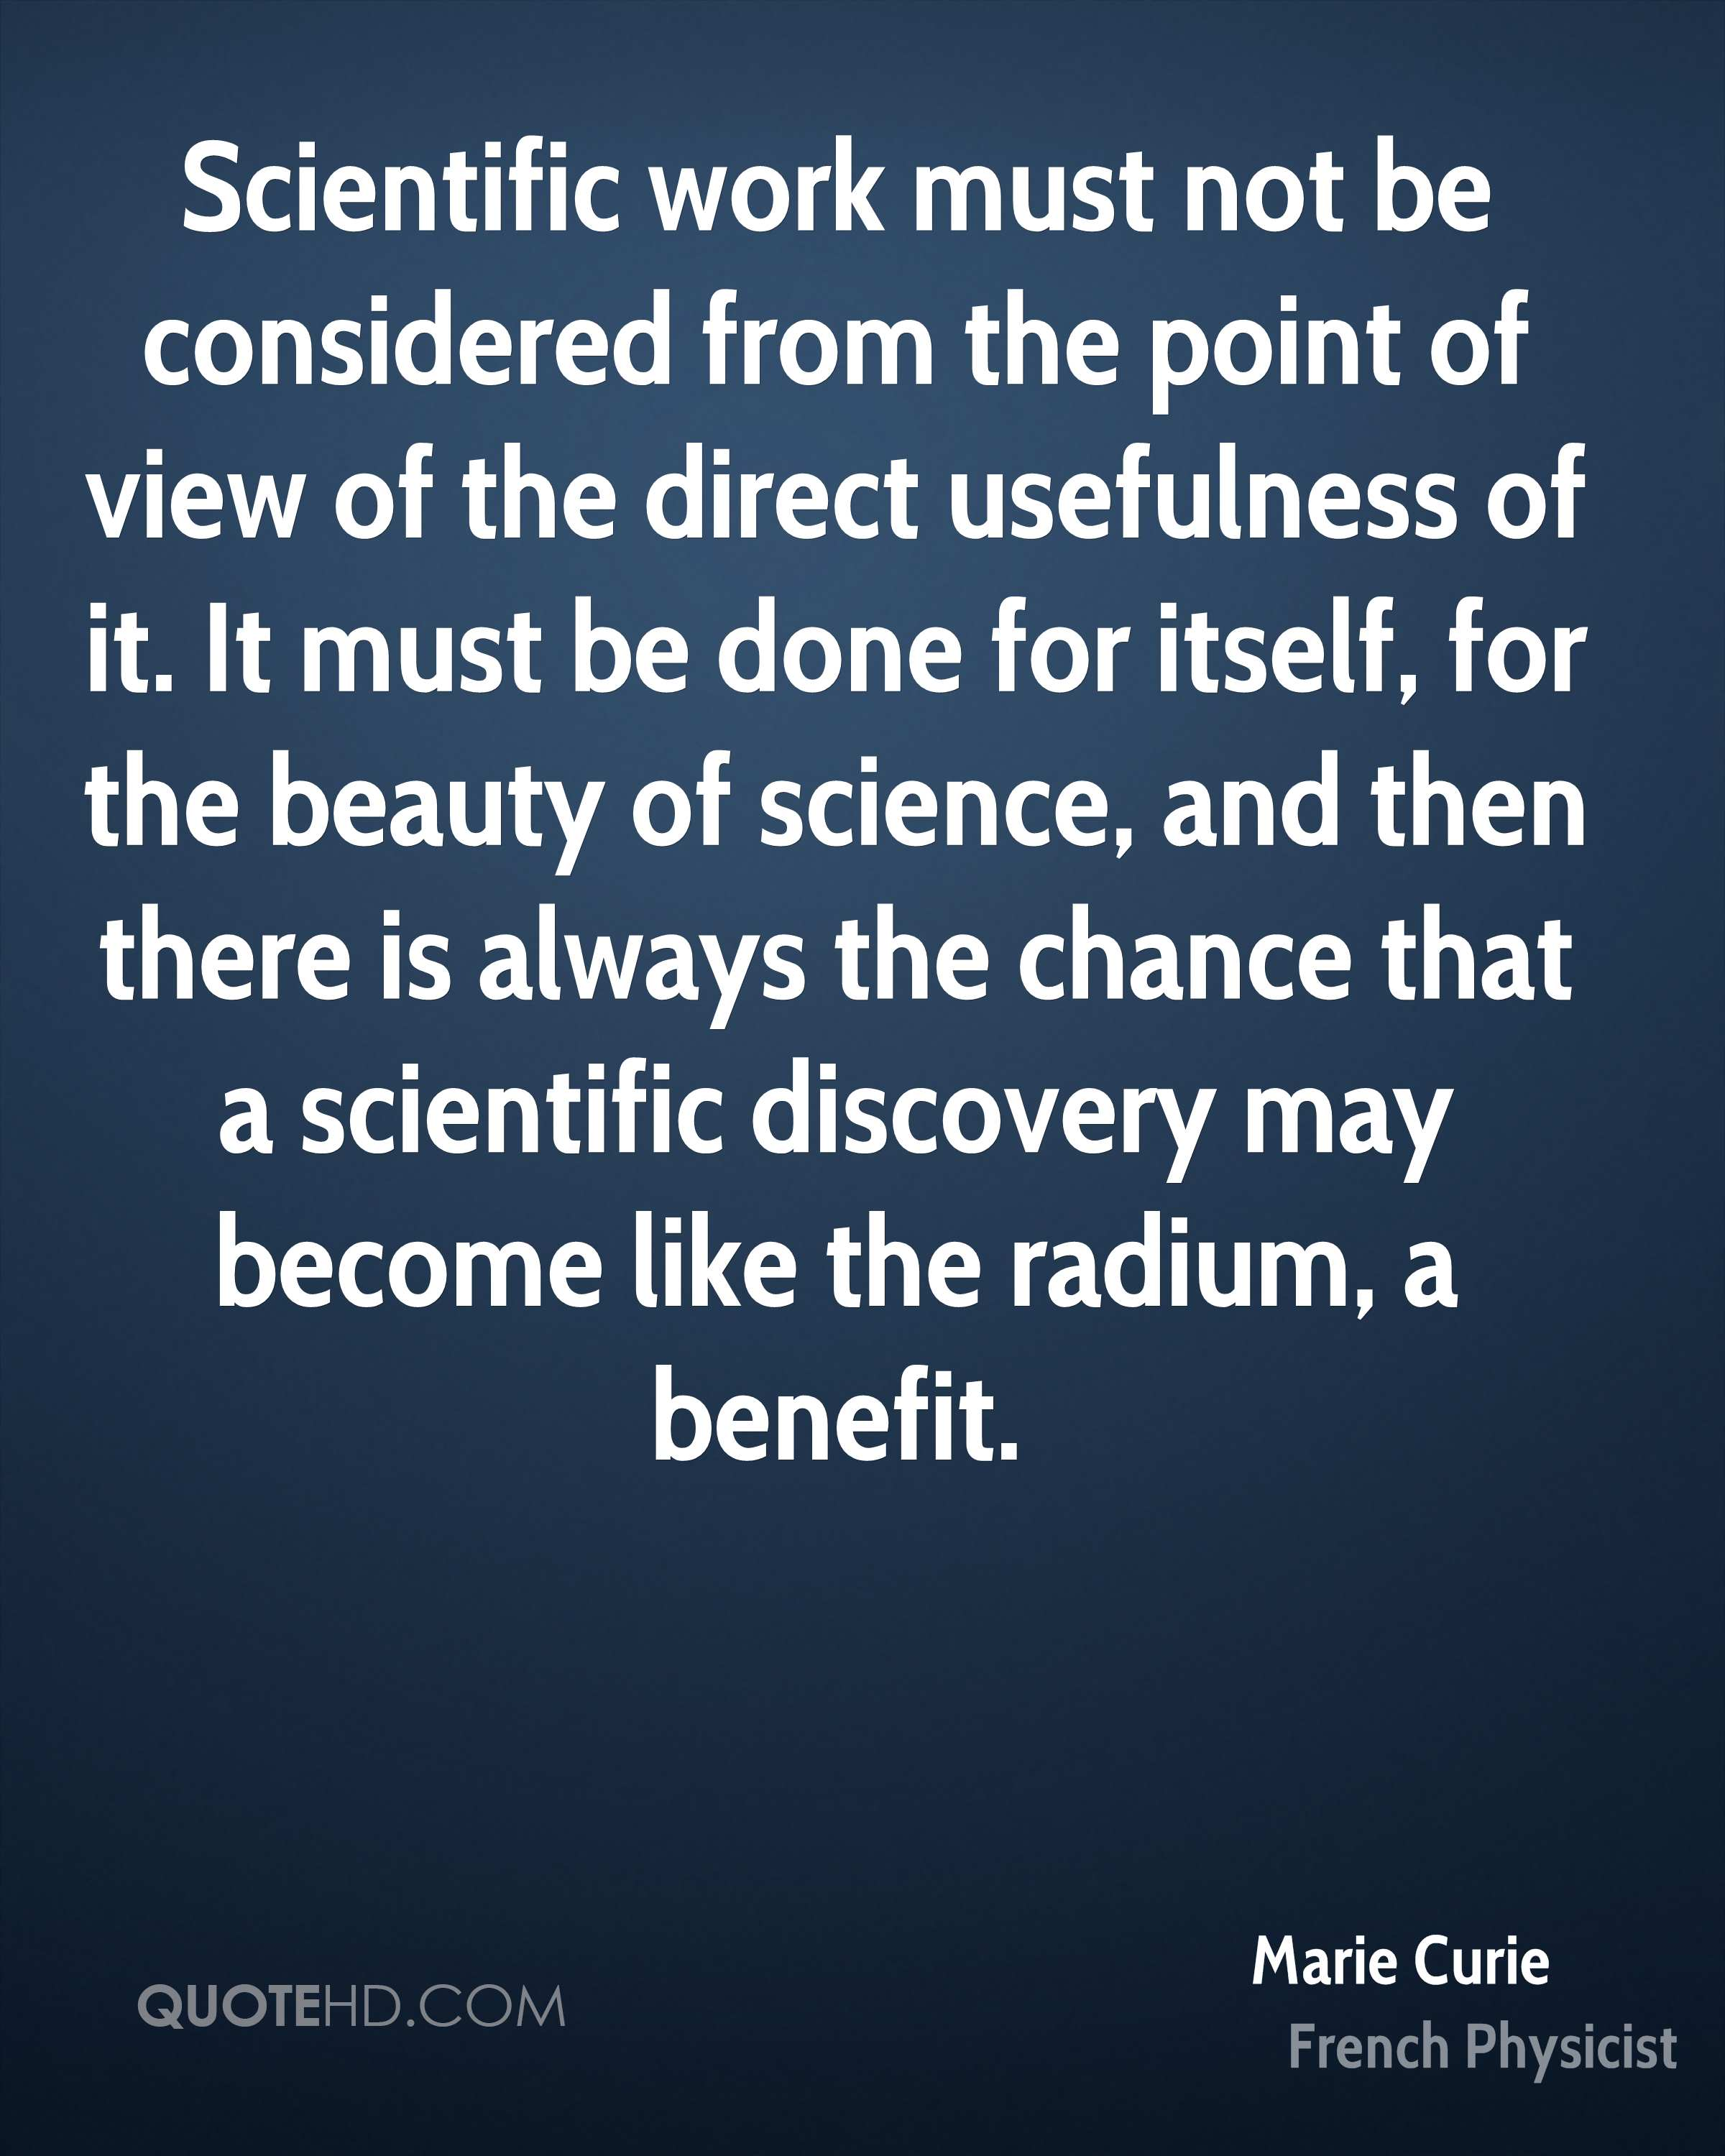 Scientific work must not be considered from the point of view of the direct usefulness of it. It must be done for itself, for the beauty of science, and then there is always the chance that a scientific discovery may become like the radium, a benefit.